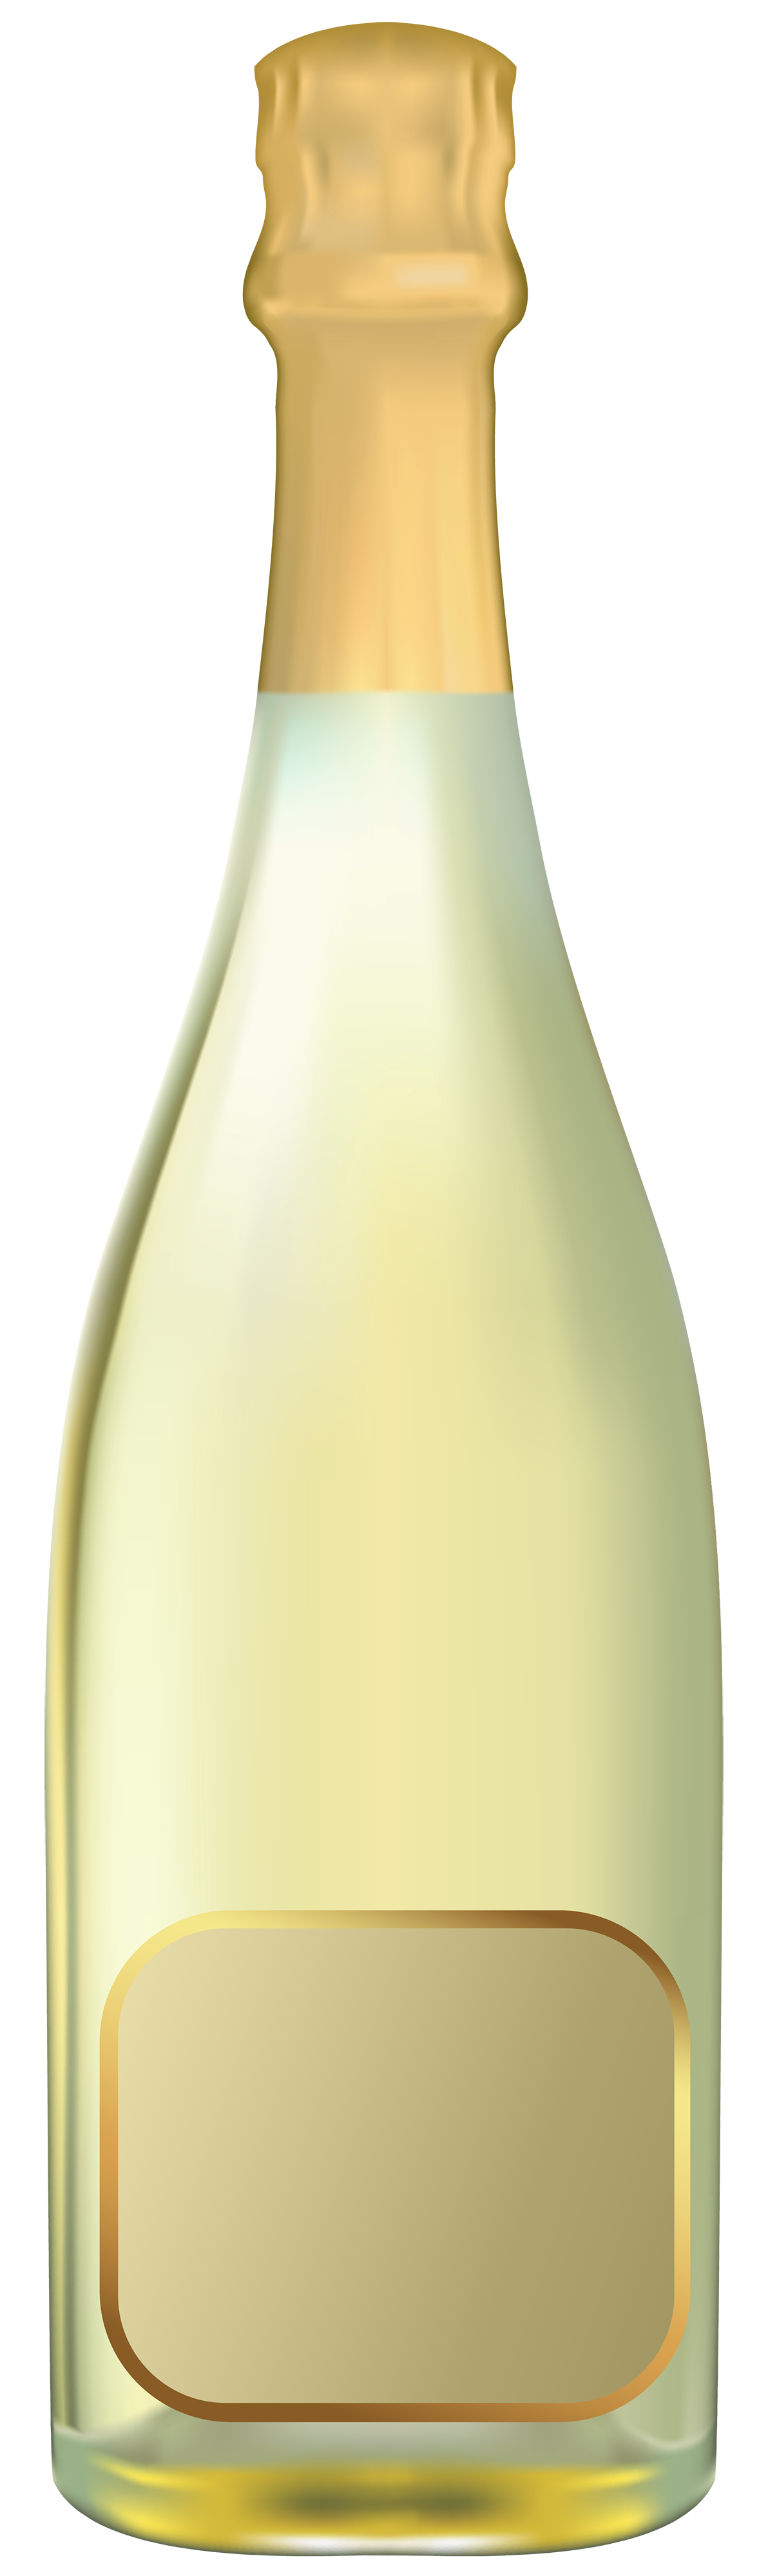 Champagne clipart best web. White wine bottle png